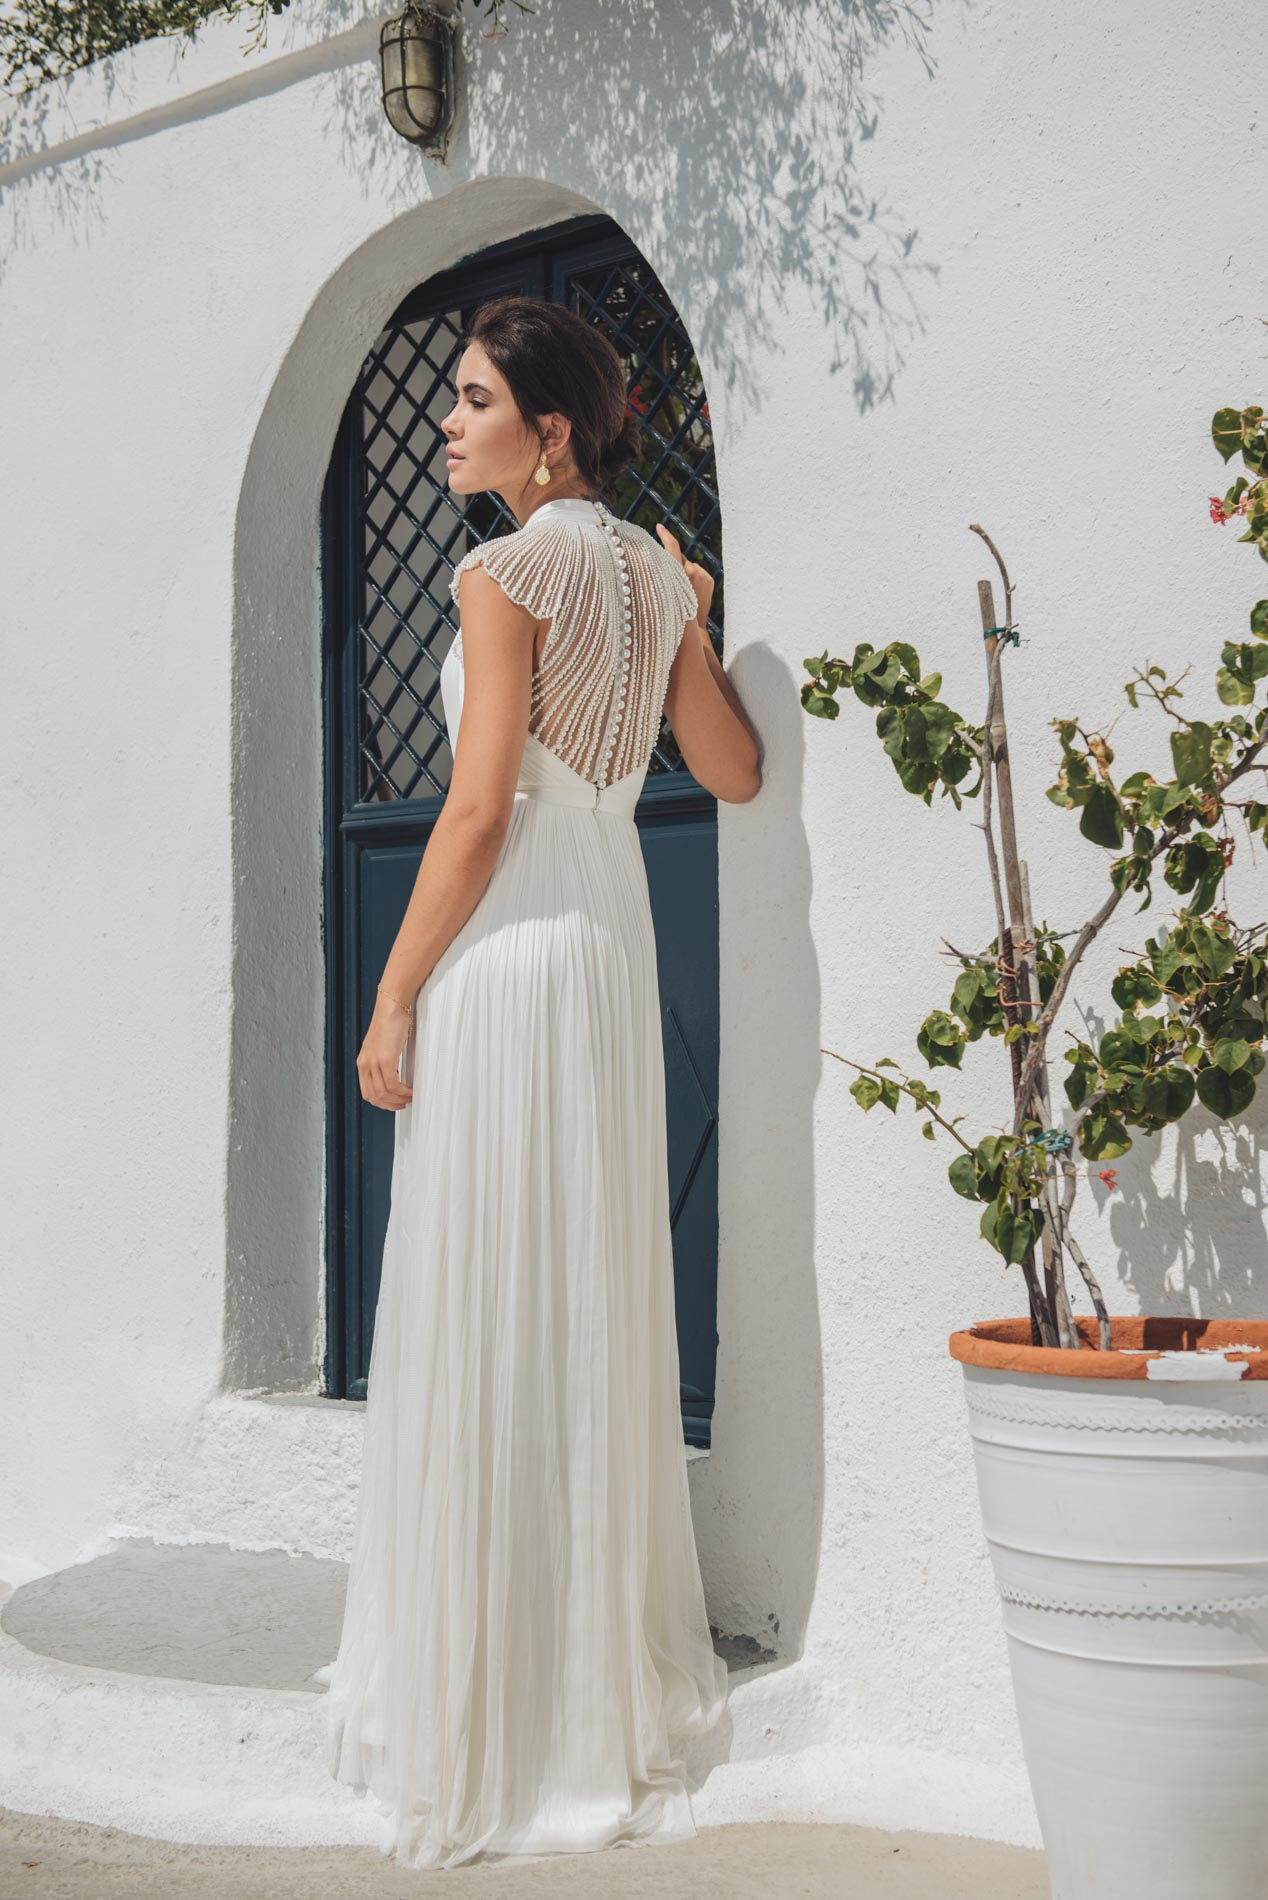 Kellyn Wedding Dress by Catherine Deane at Hannah Elizabeth Bridal, Botley. Hosting outstanding events for Hampshire Brides